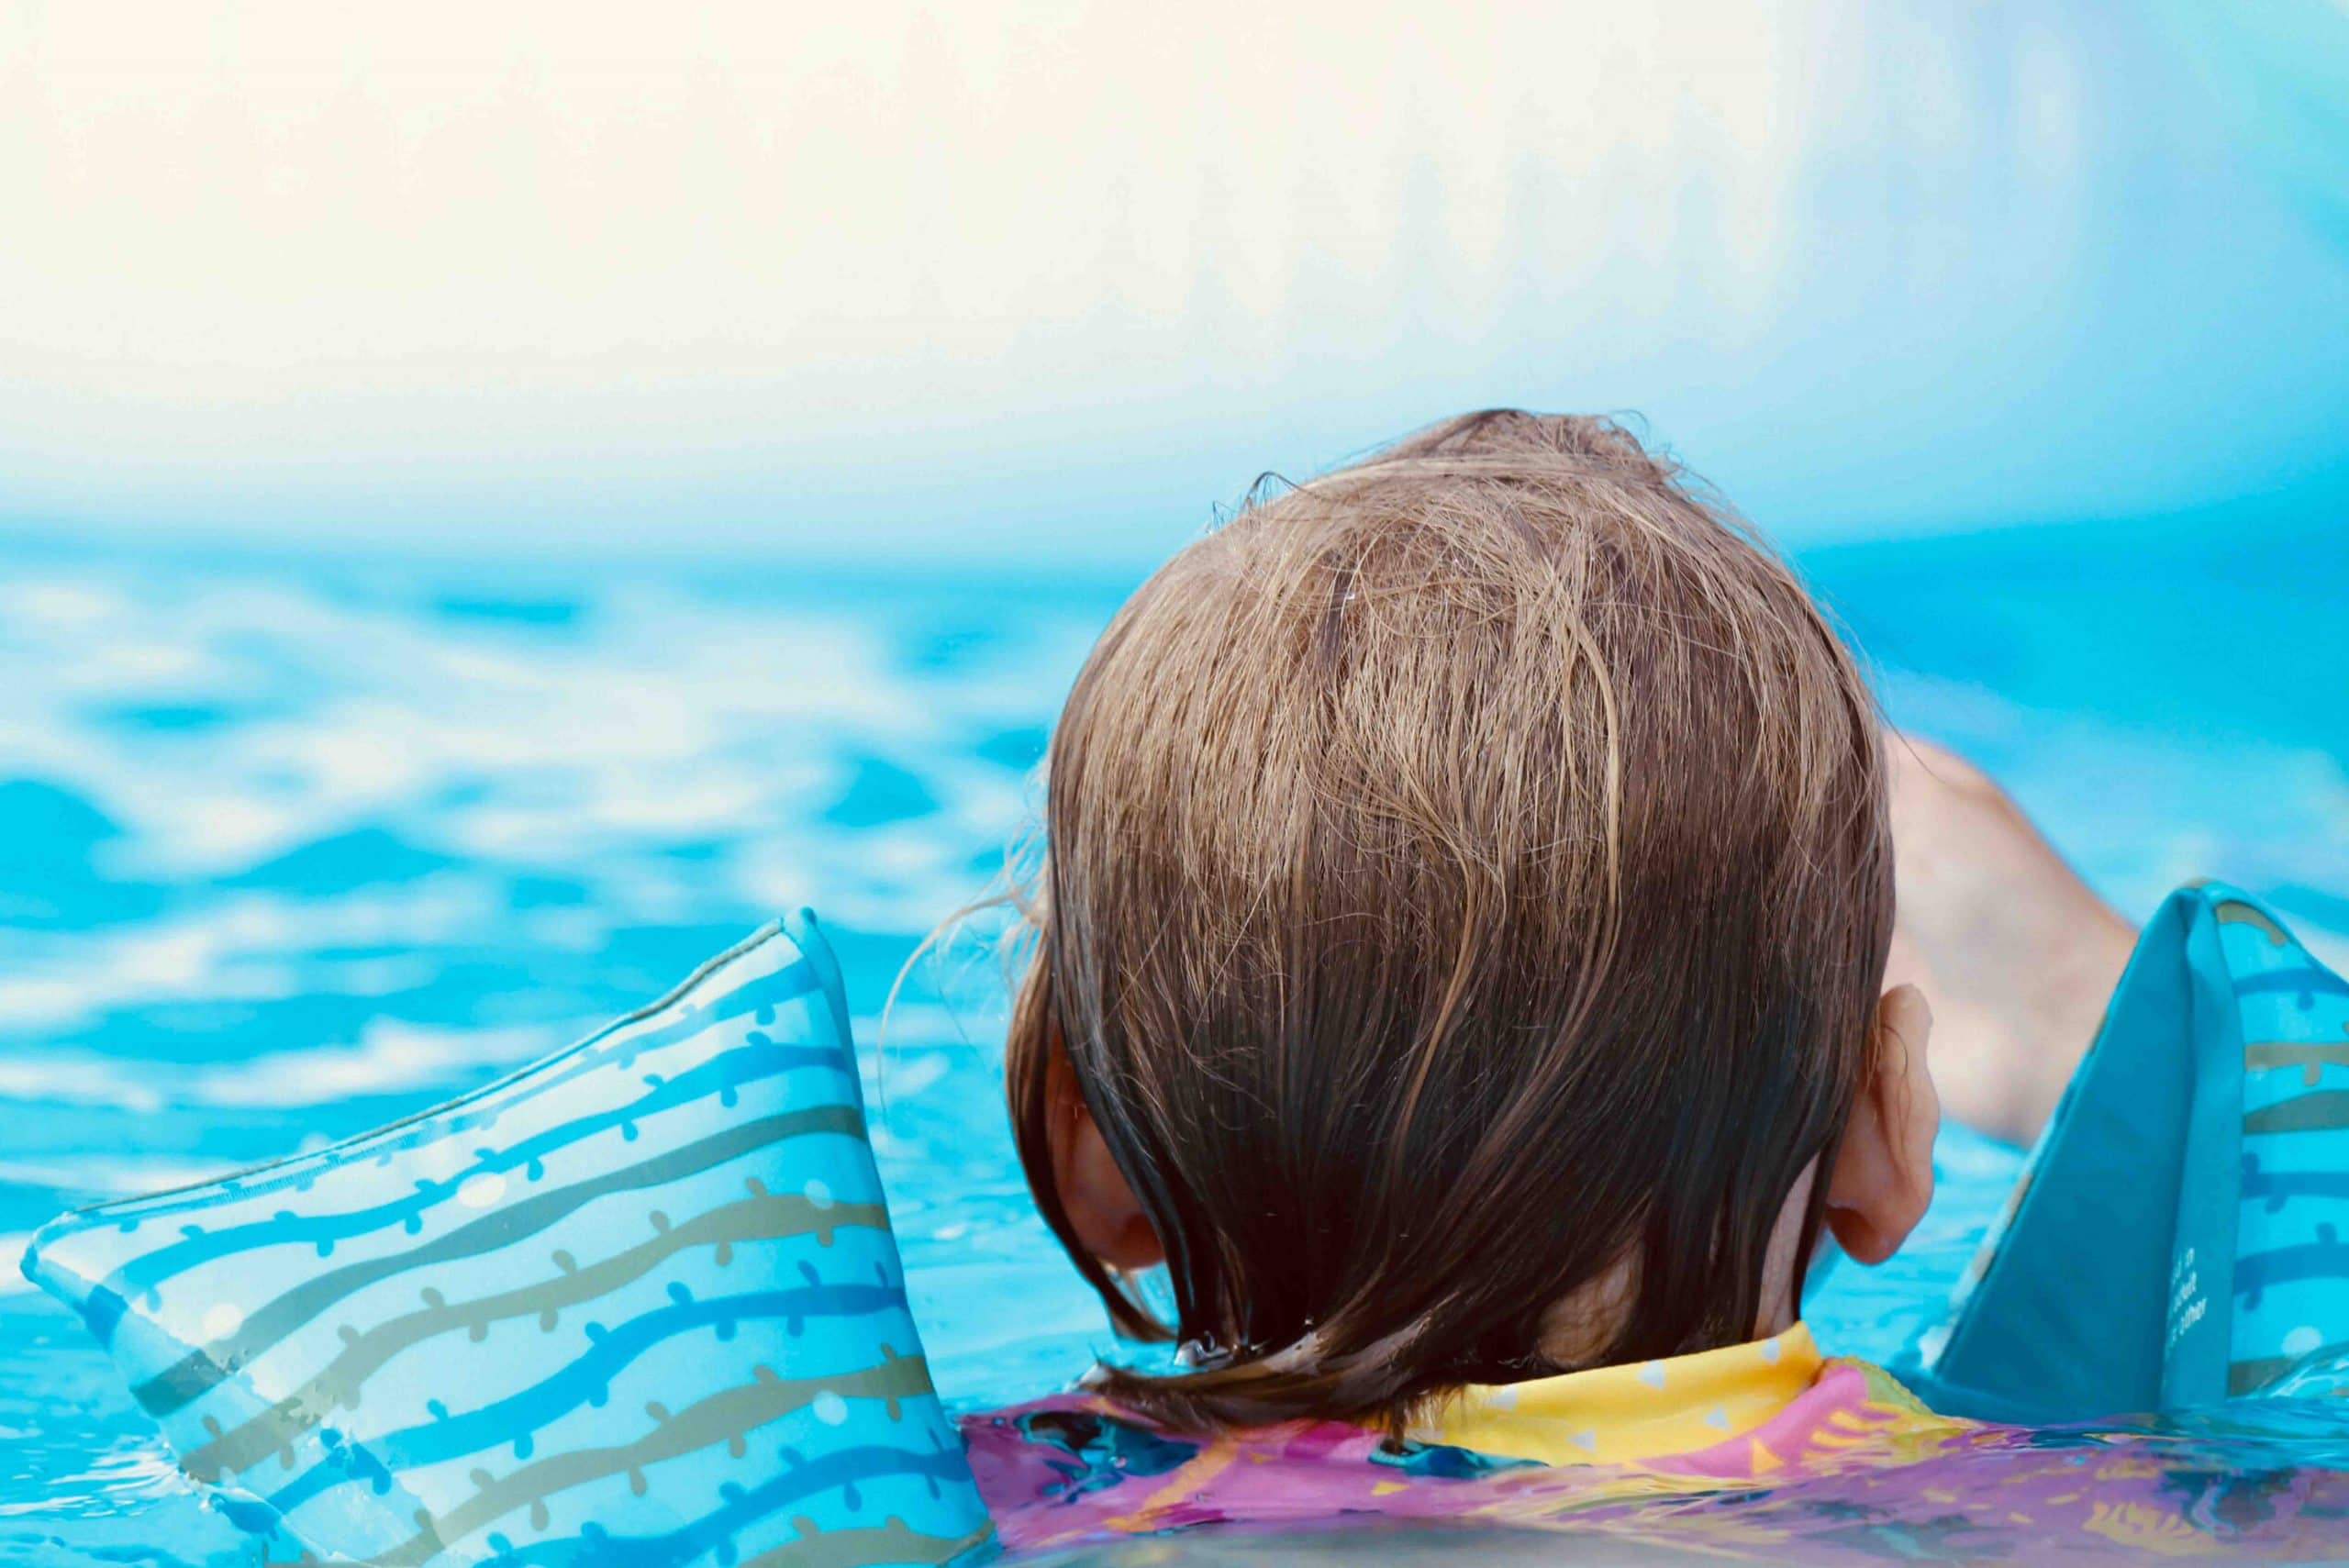 Image shows the back of a child's head and shoulders floating in a swimming pool with floaties on.